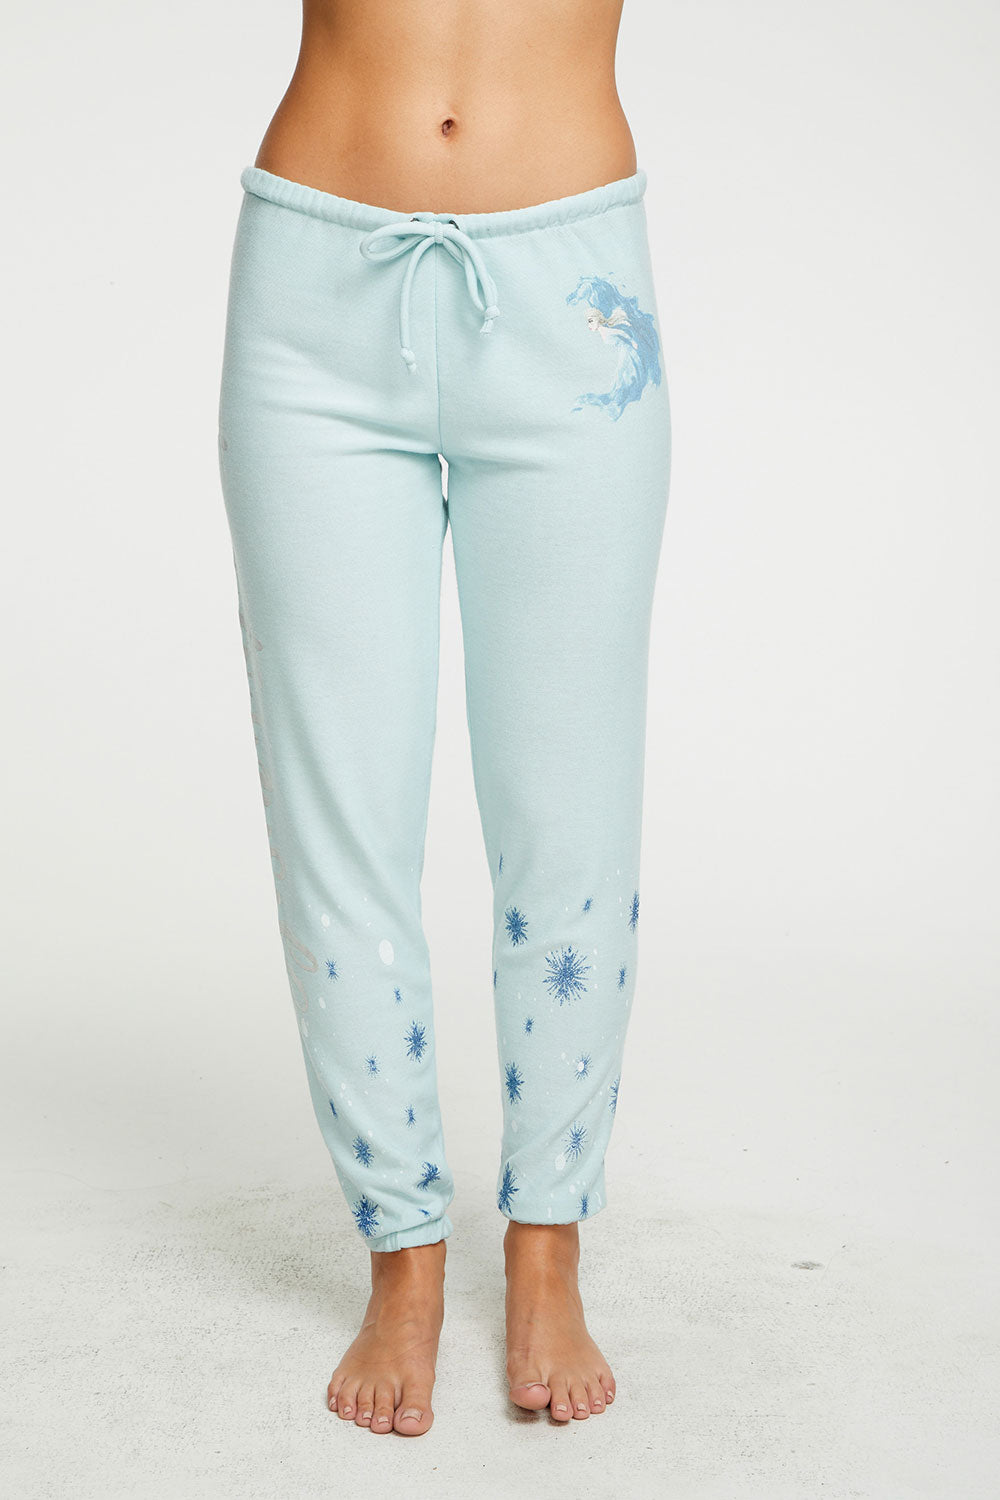 Disney's Frozen 2 - True To Myself Pants WOMENS chaserbrand4.myshopify.com